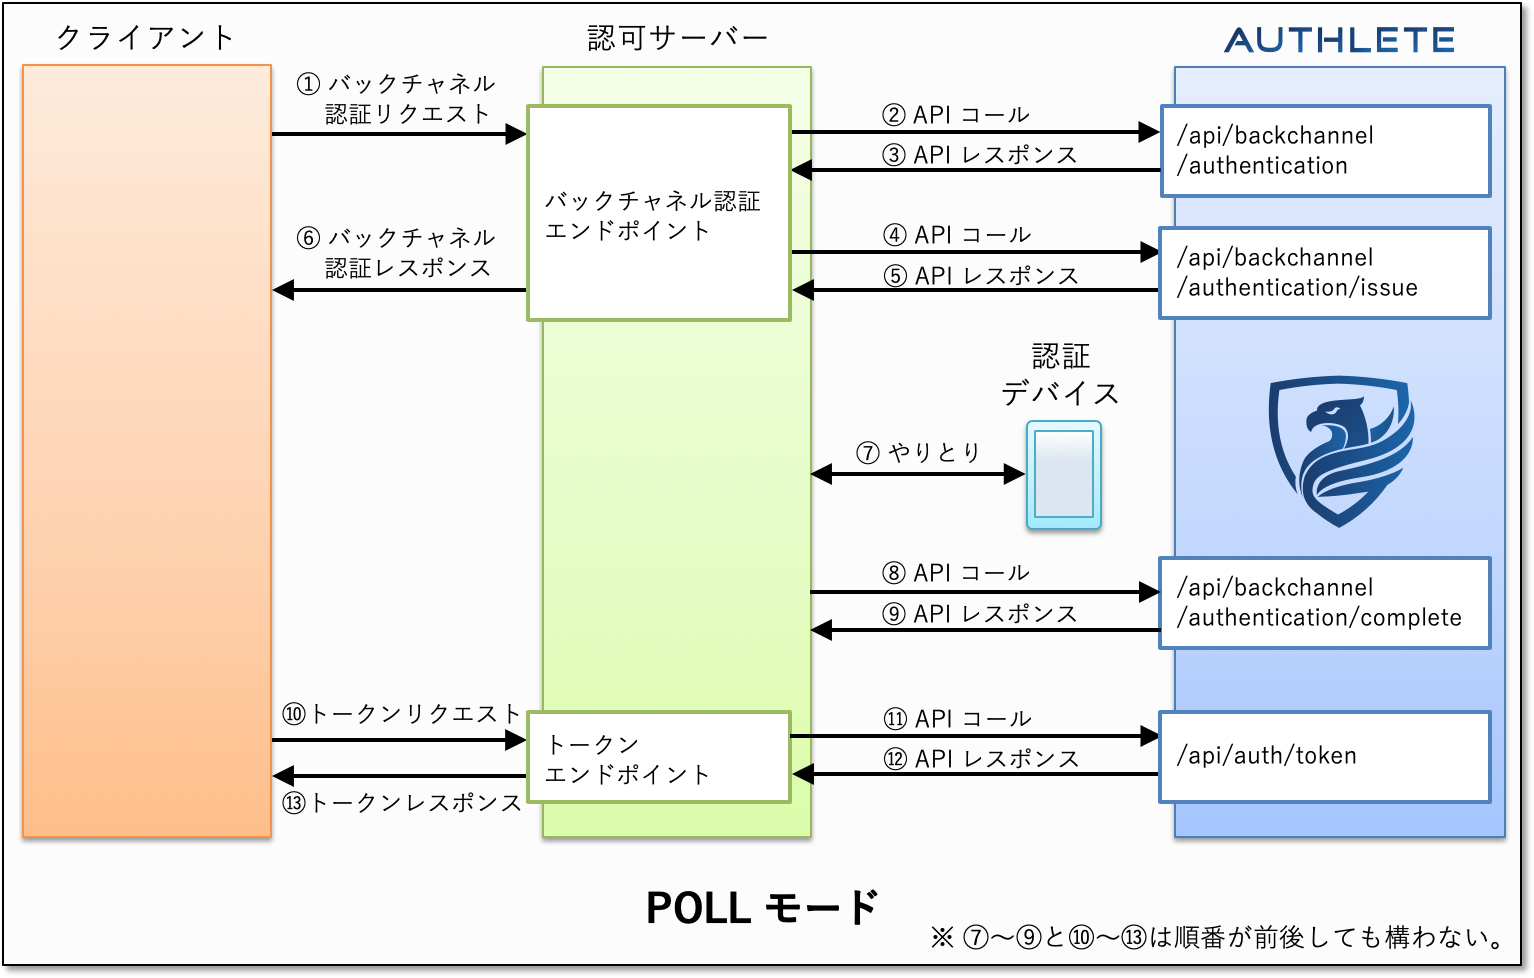 ciba-poll-mode-authlete.png